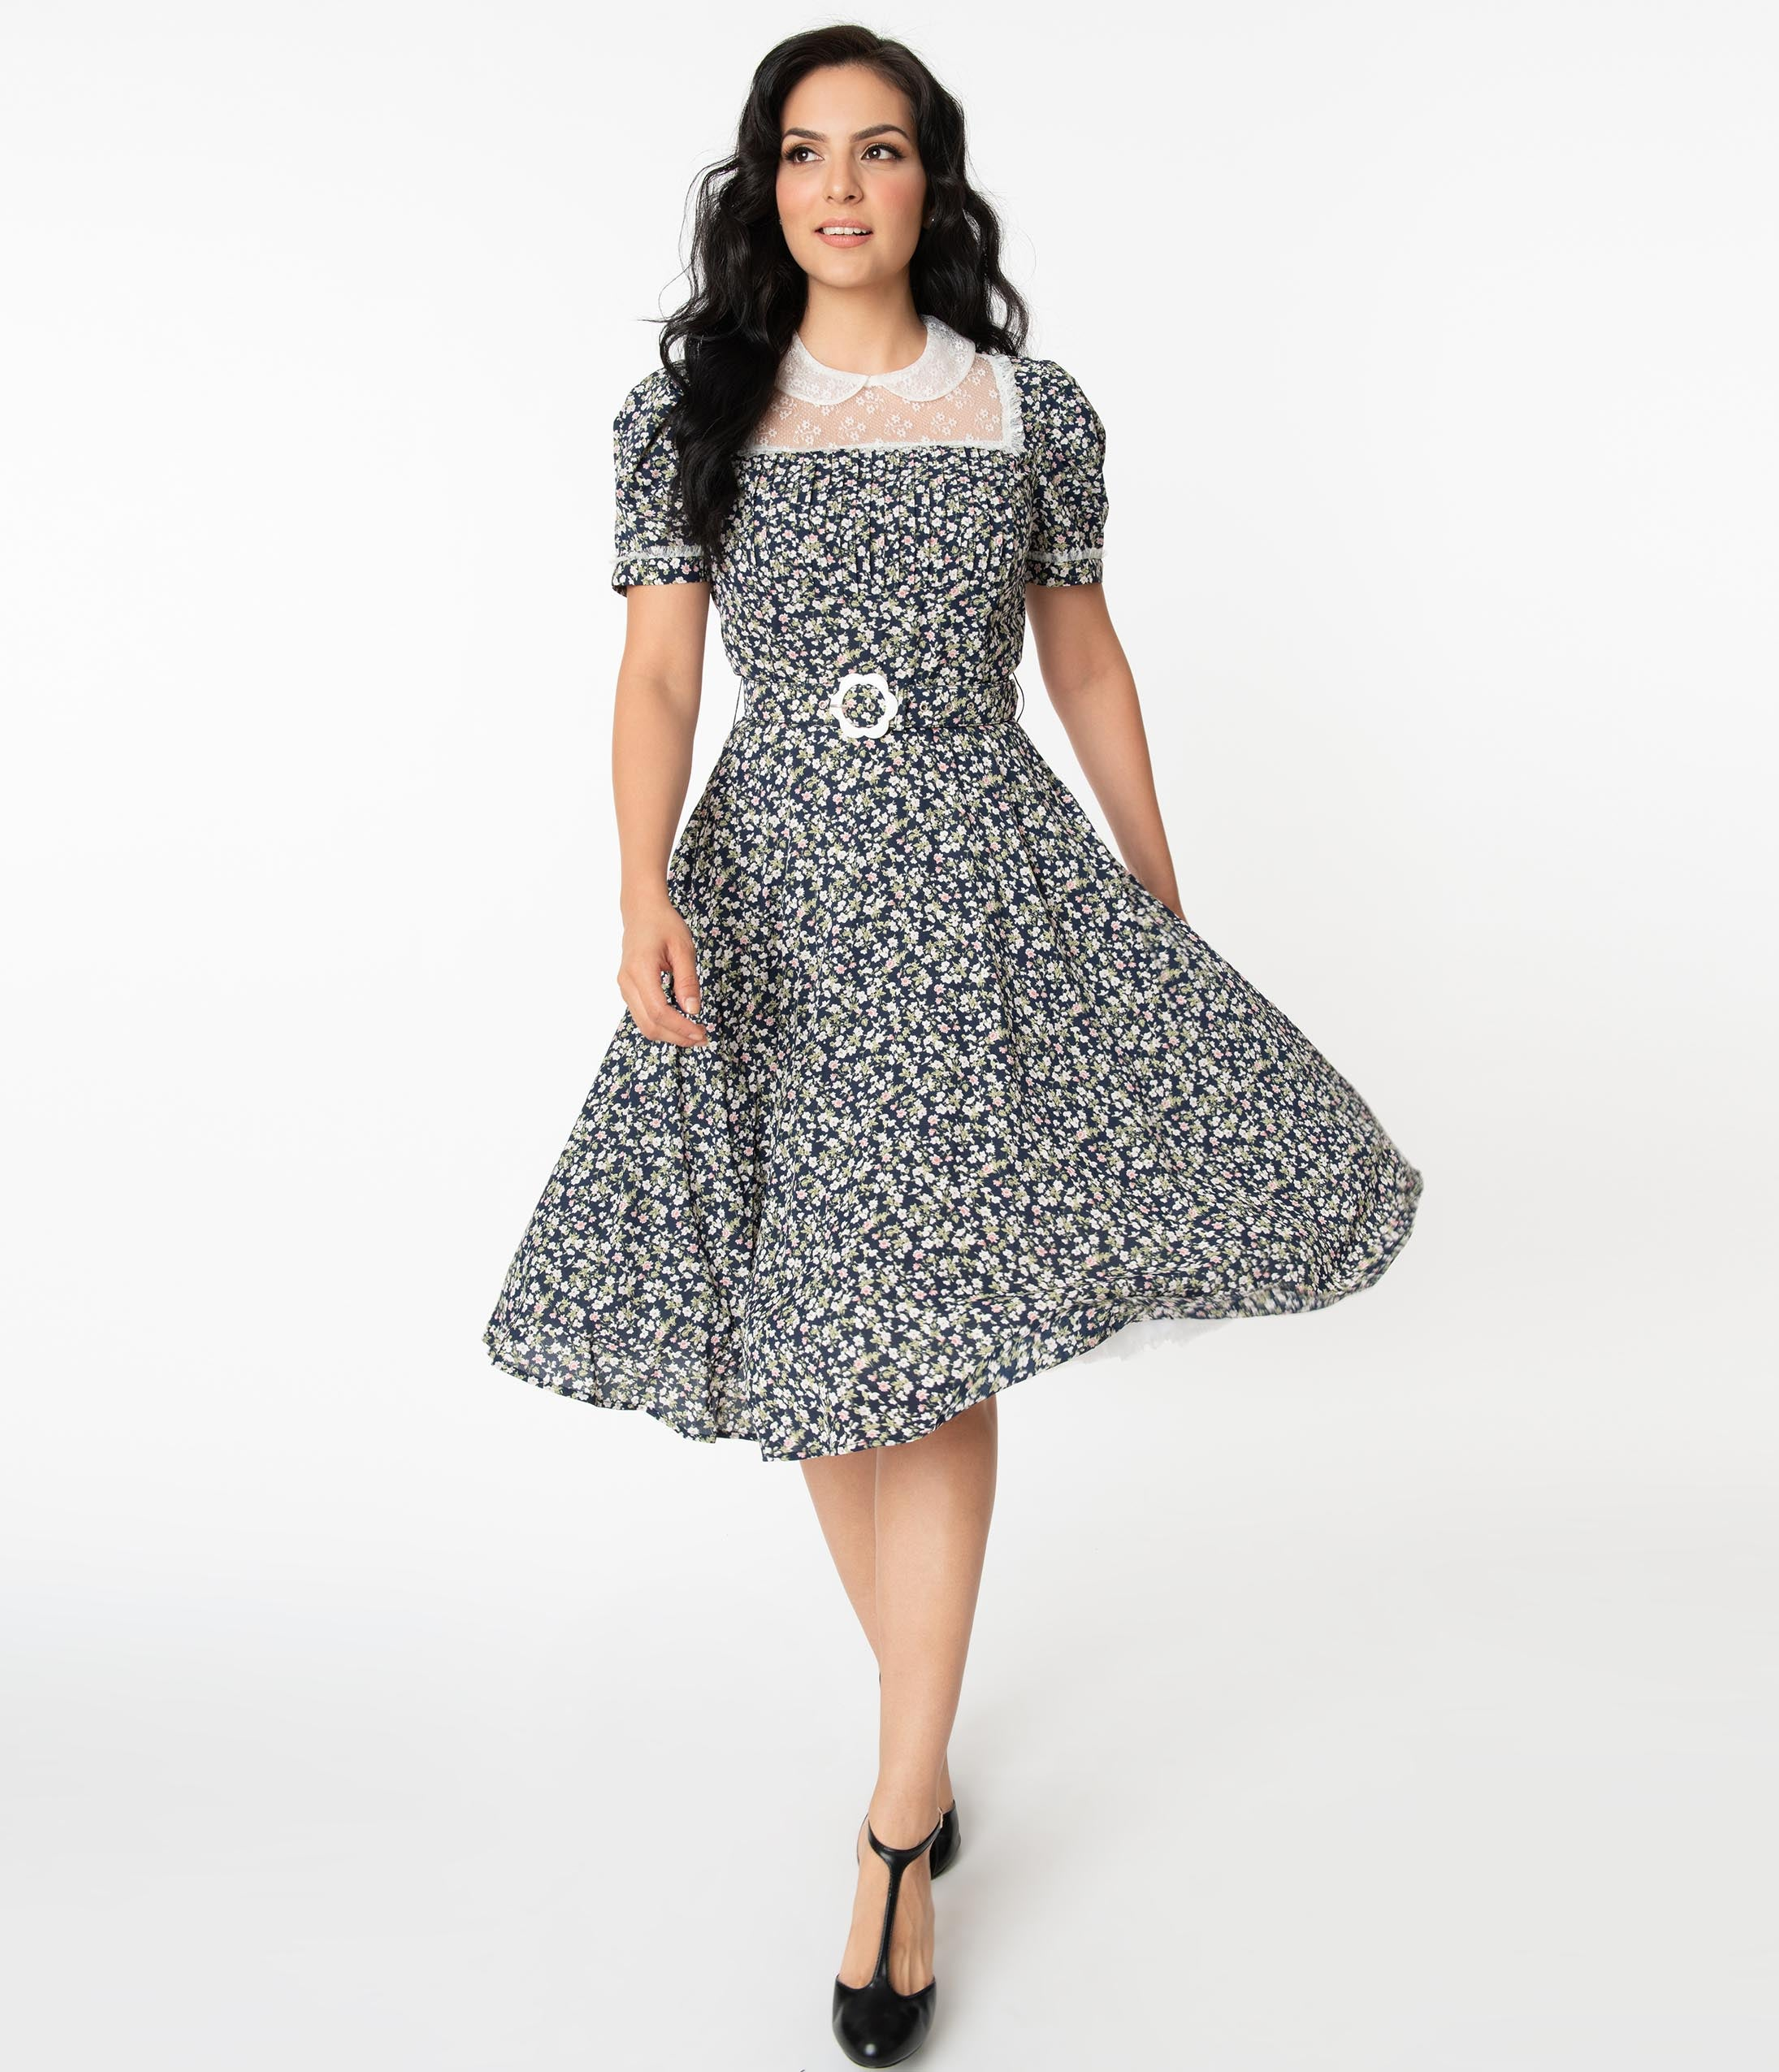 1940s Fashion Advice for Tall Women Unique Vintage Navy Blue Dainty Floral Morton Swing Dress $78.00 AT vintagedancer.com